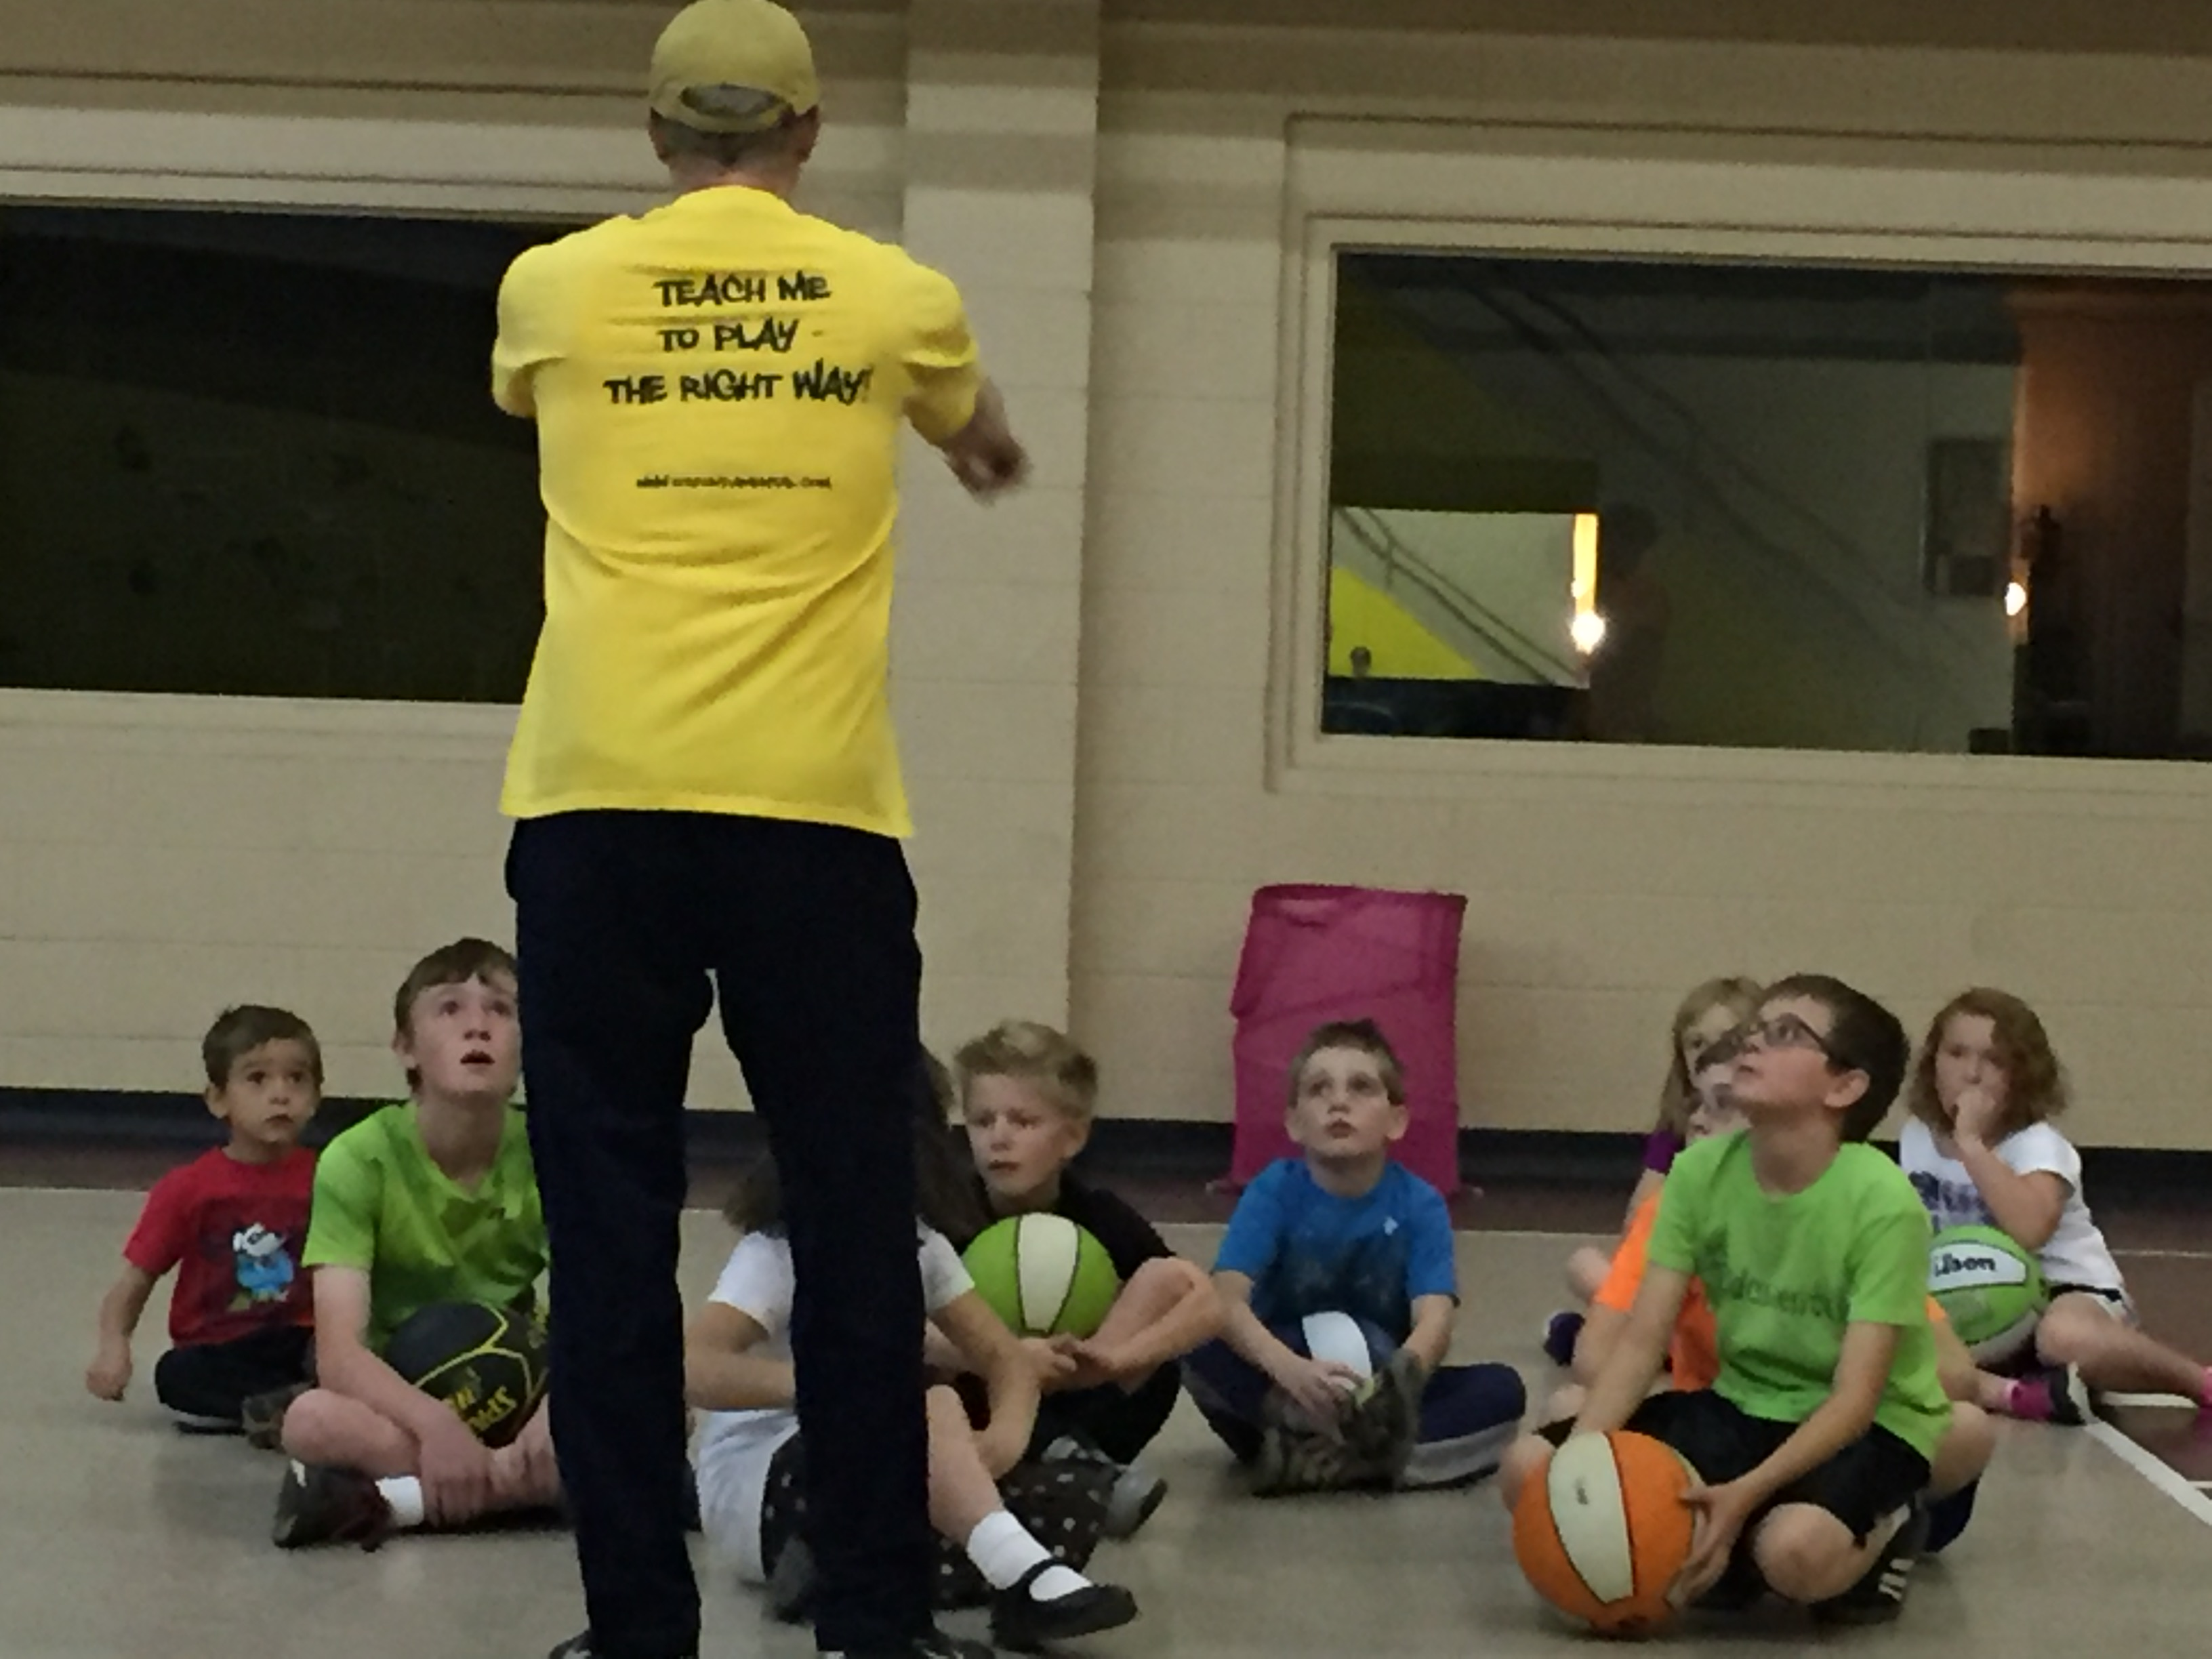 Learning Basketball Rules